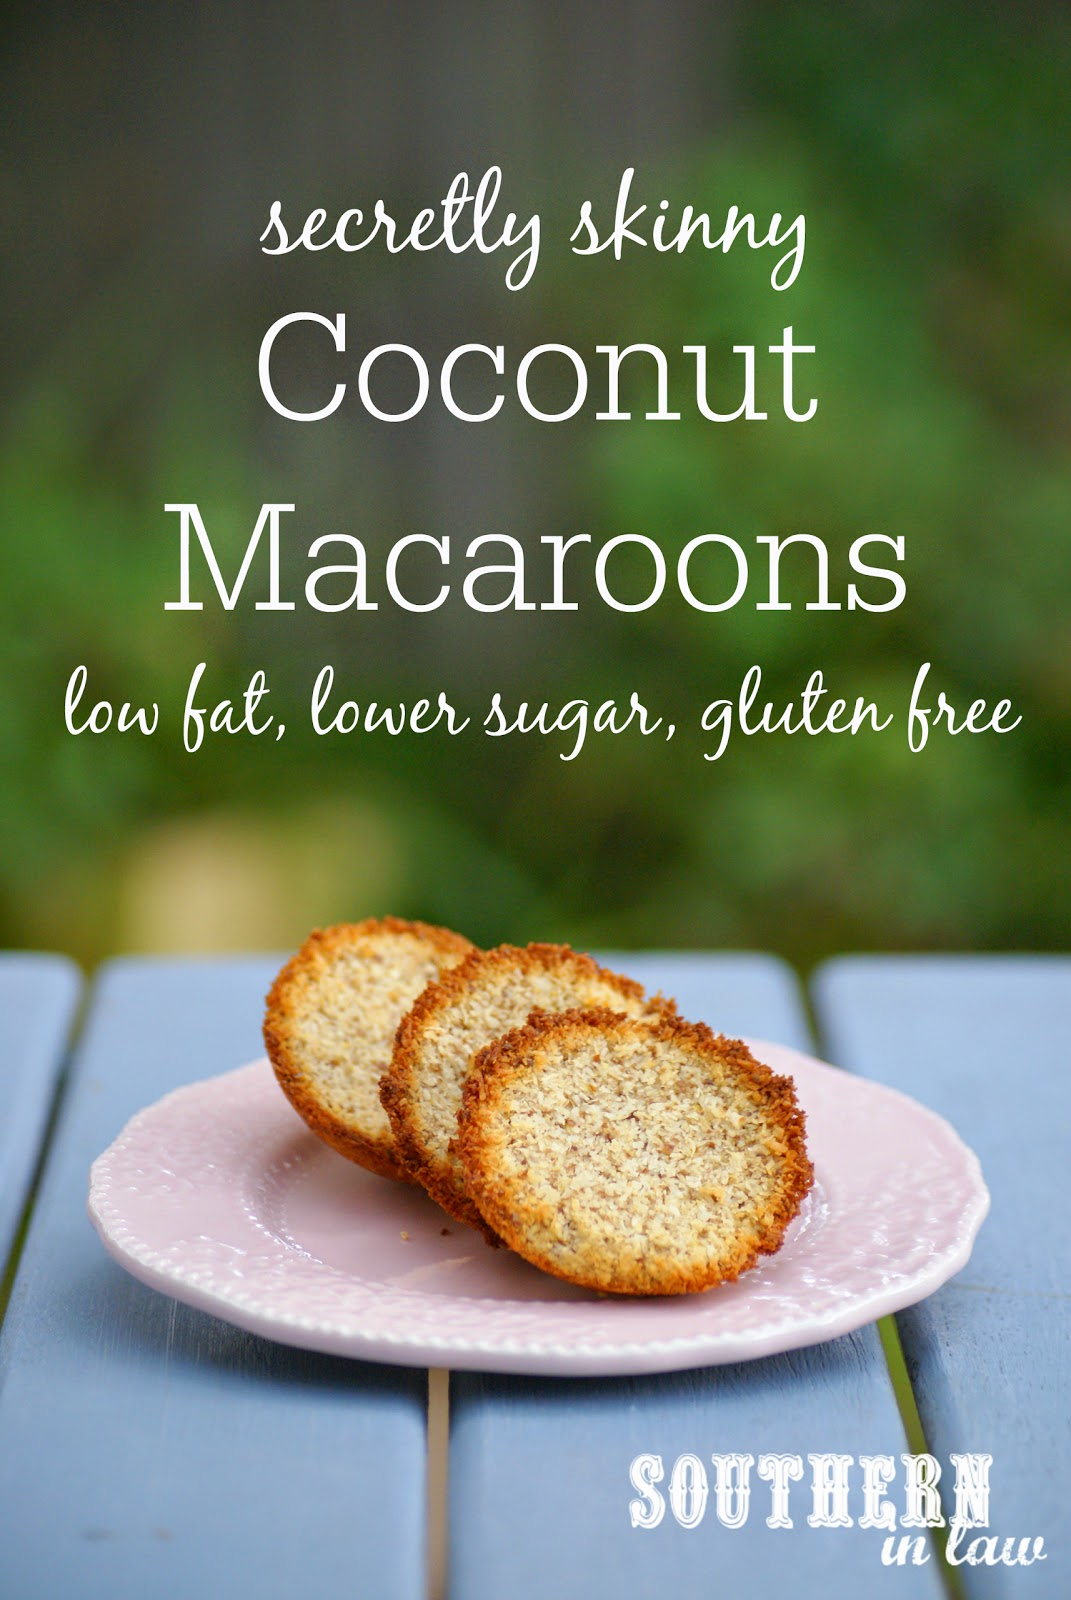 Secretly Skinny Gluten Free Coconut Macaroons Recipe - low fat, gluten free, grain free, low sugar, healthy cookie recipe